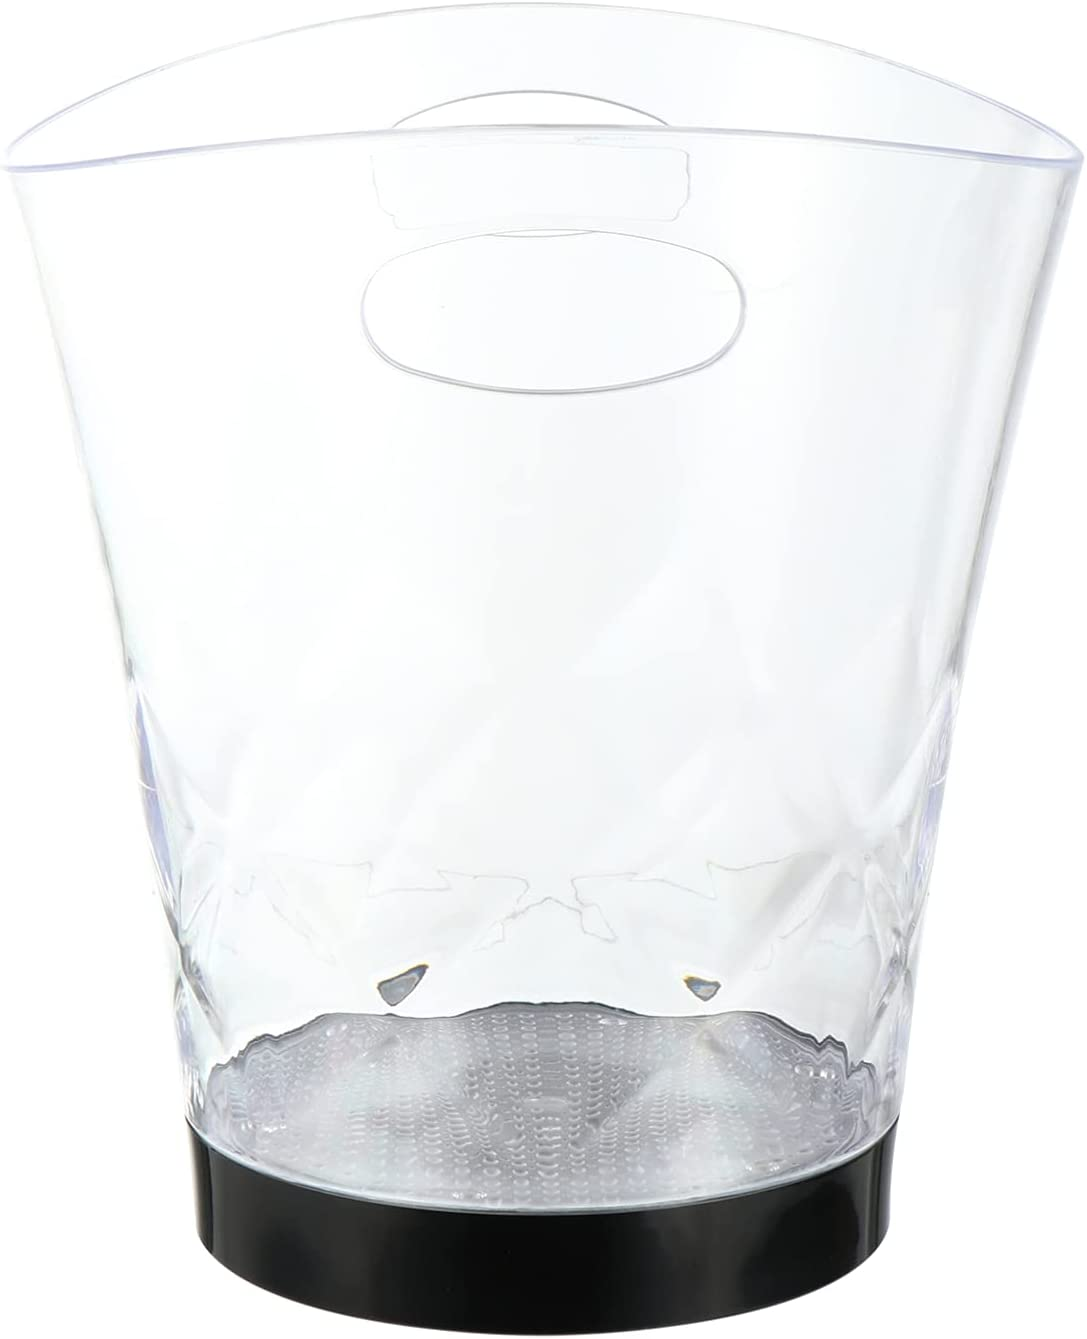 Hemoton LED Ice Buckets Clear Acrylic Ice Bucket Colors Changing LED Cooler Bucket Champagne Wine Drinks Beer Bottles Container for Home Party Bar